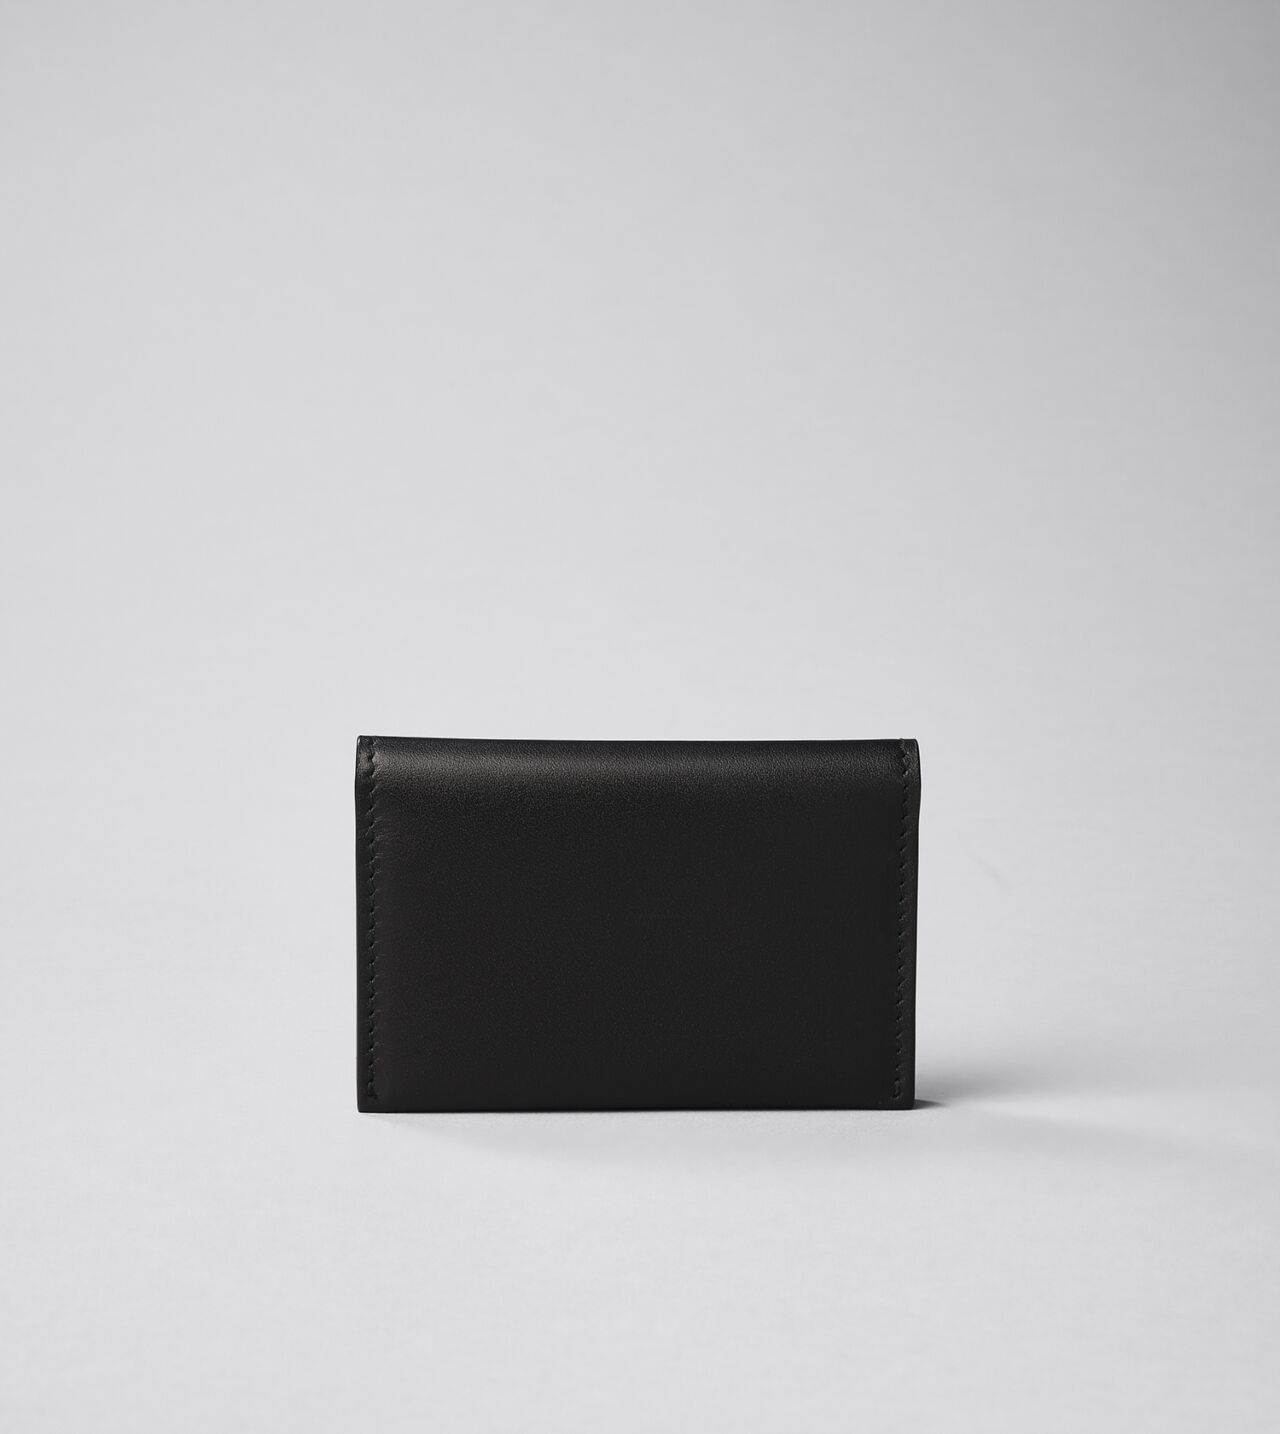 Picture of Byredo Business card holder in Black leather